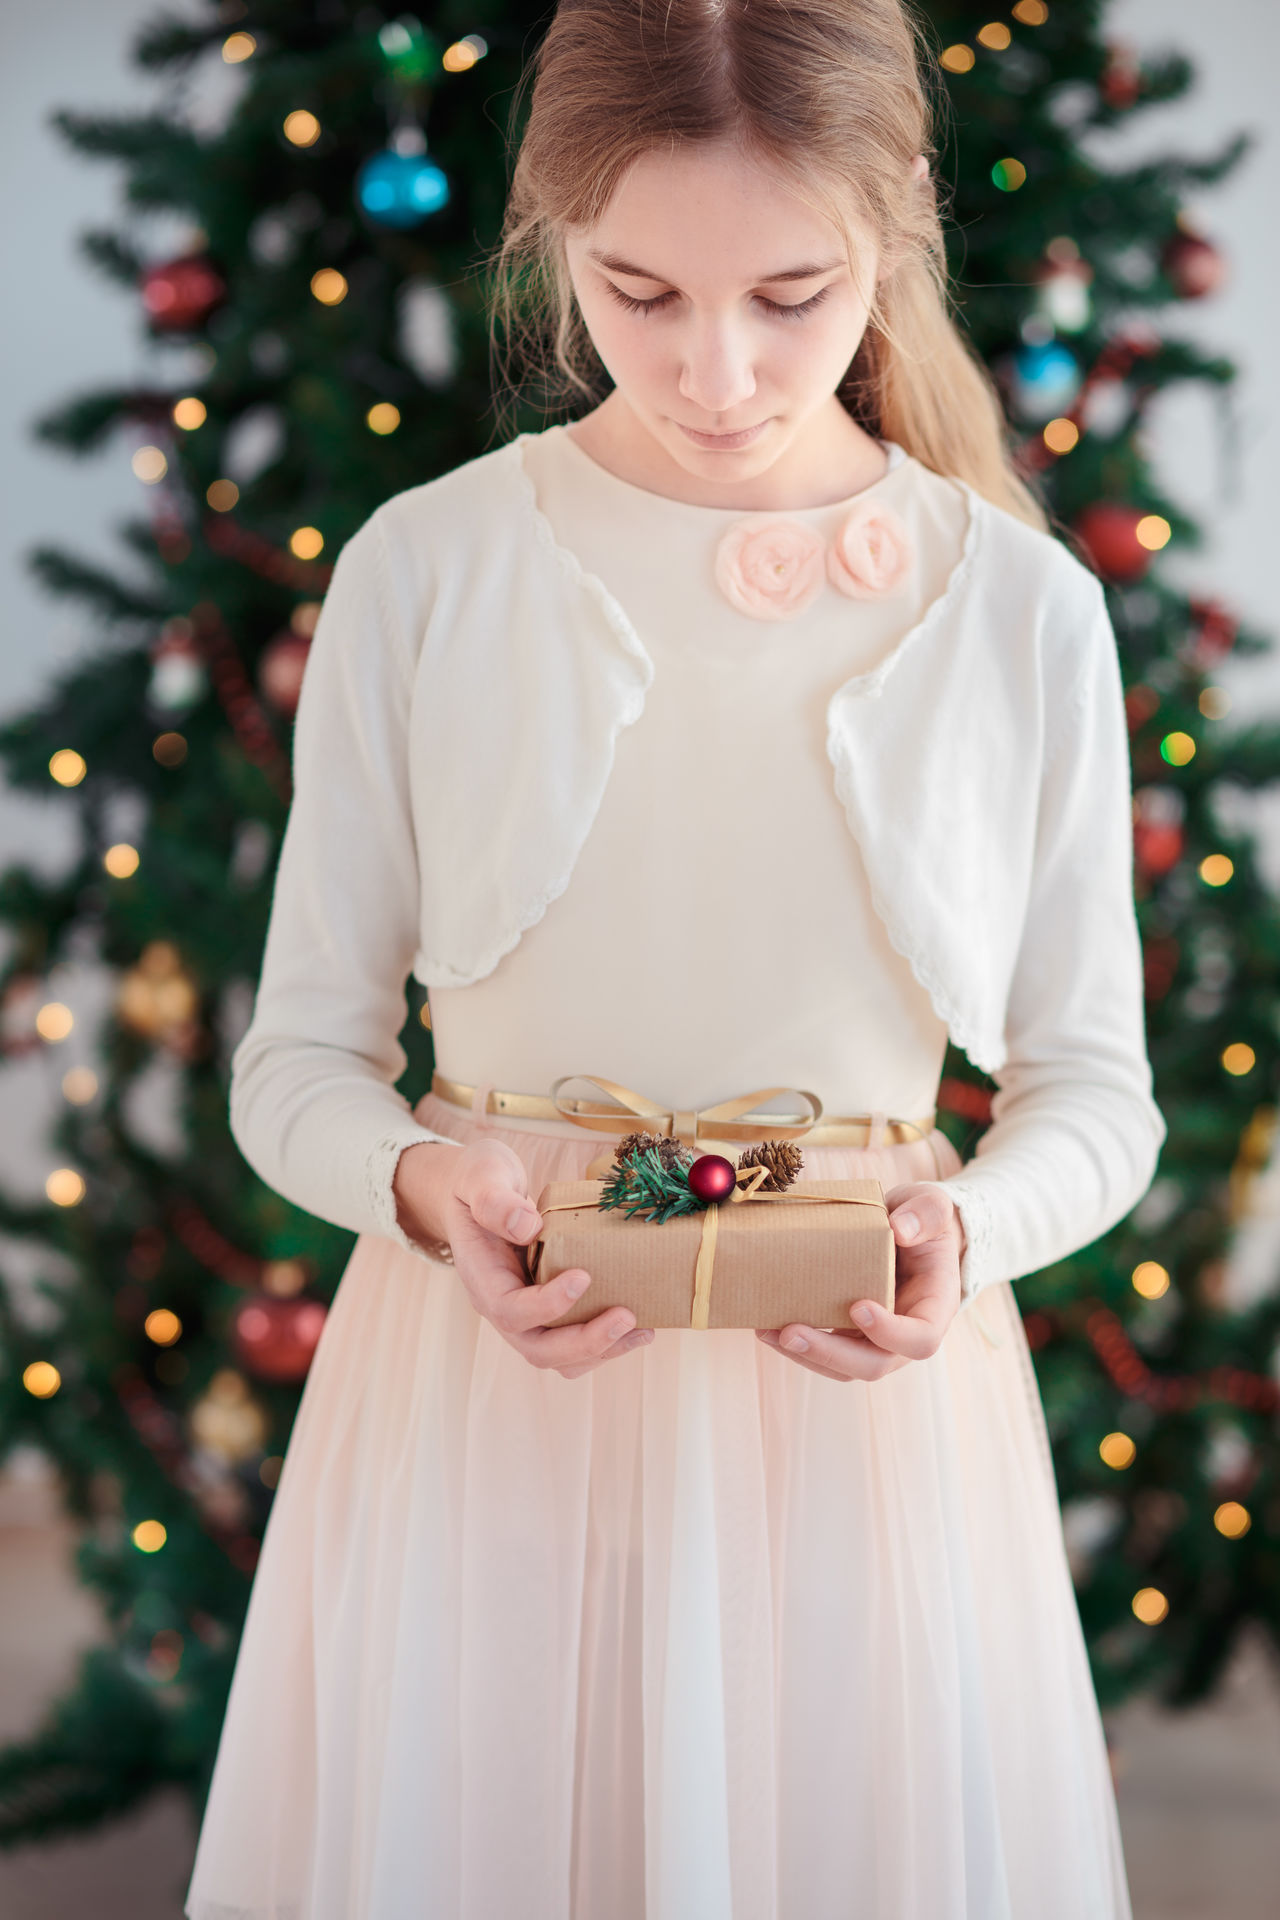 Beautiful stock photos of weihnachten,  12-13 Years,  Advent,  Beauty,  Blond Hair